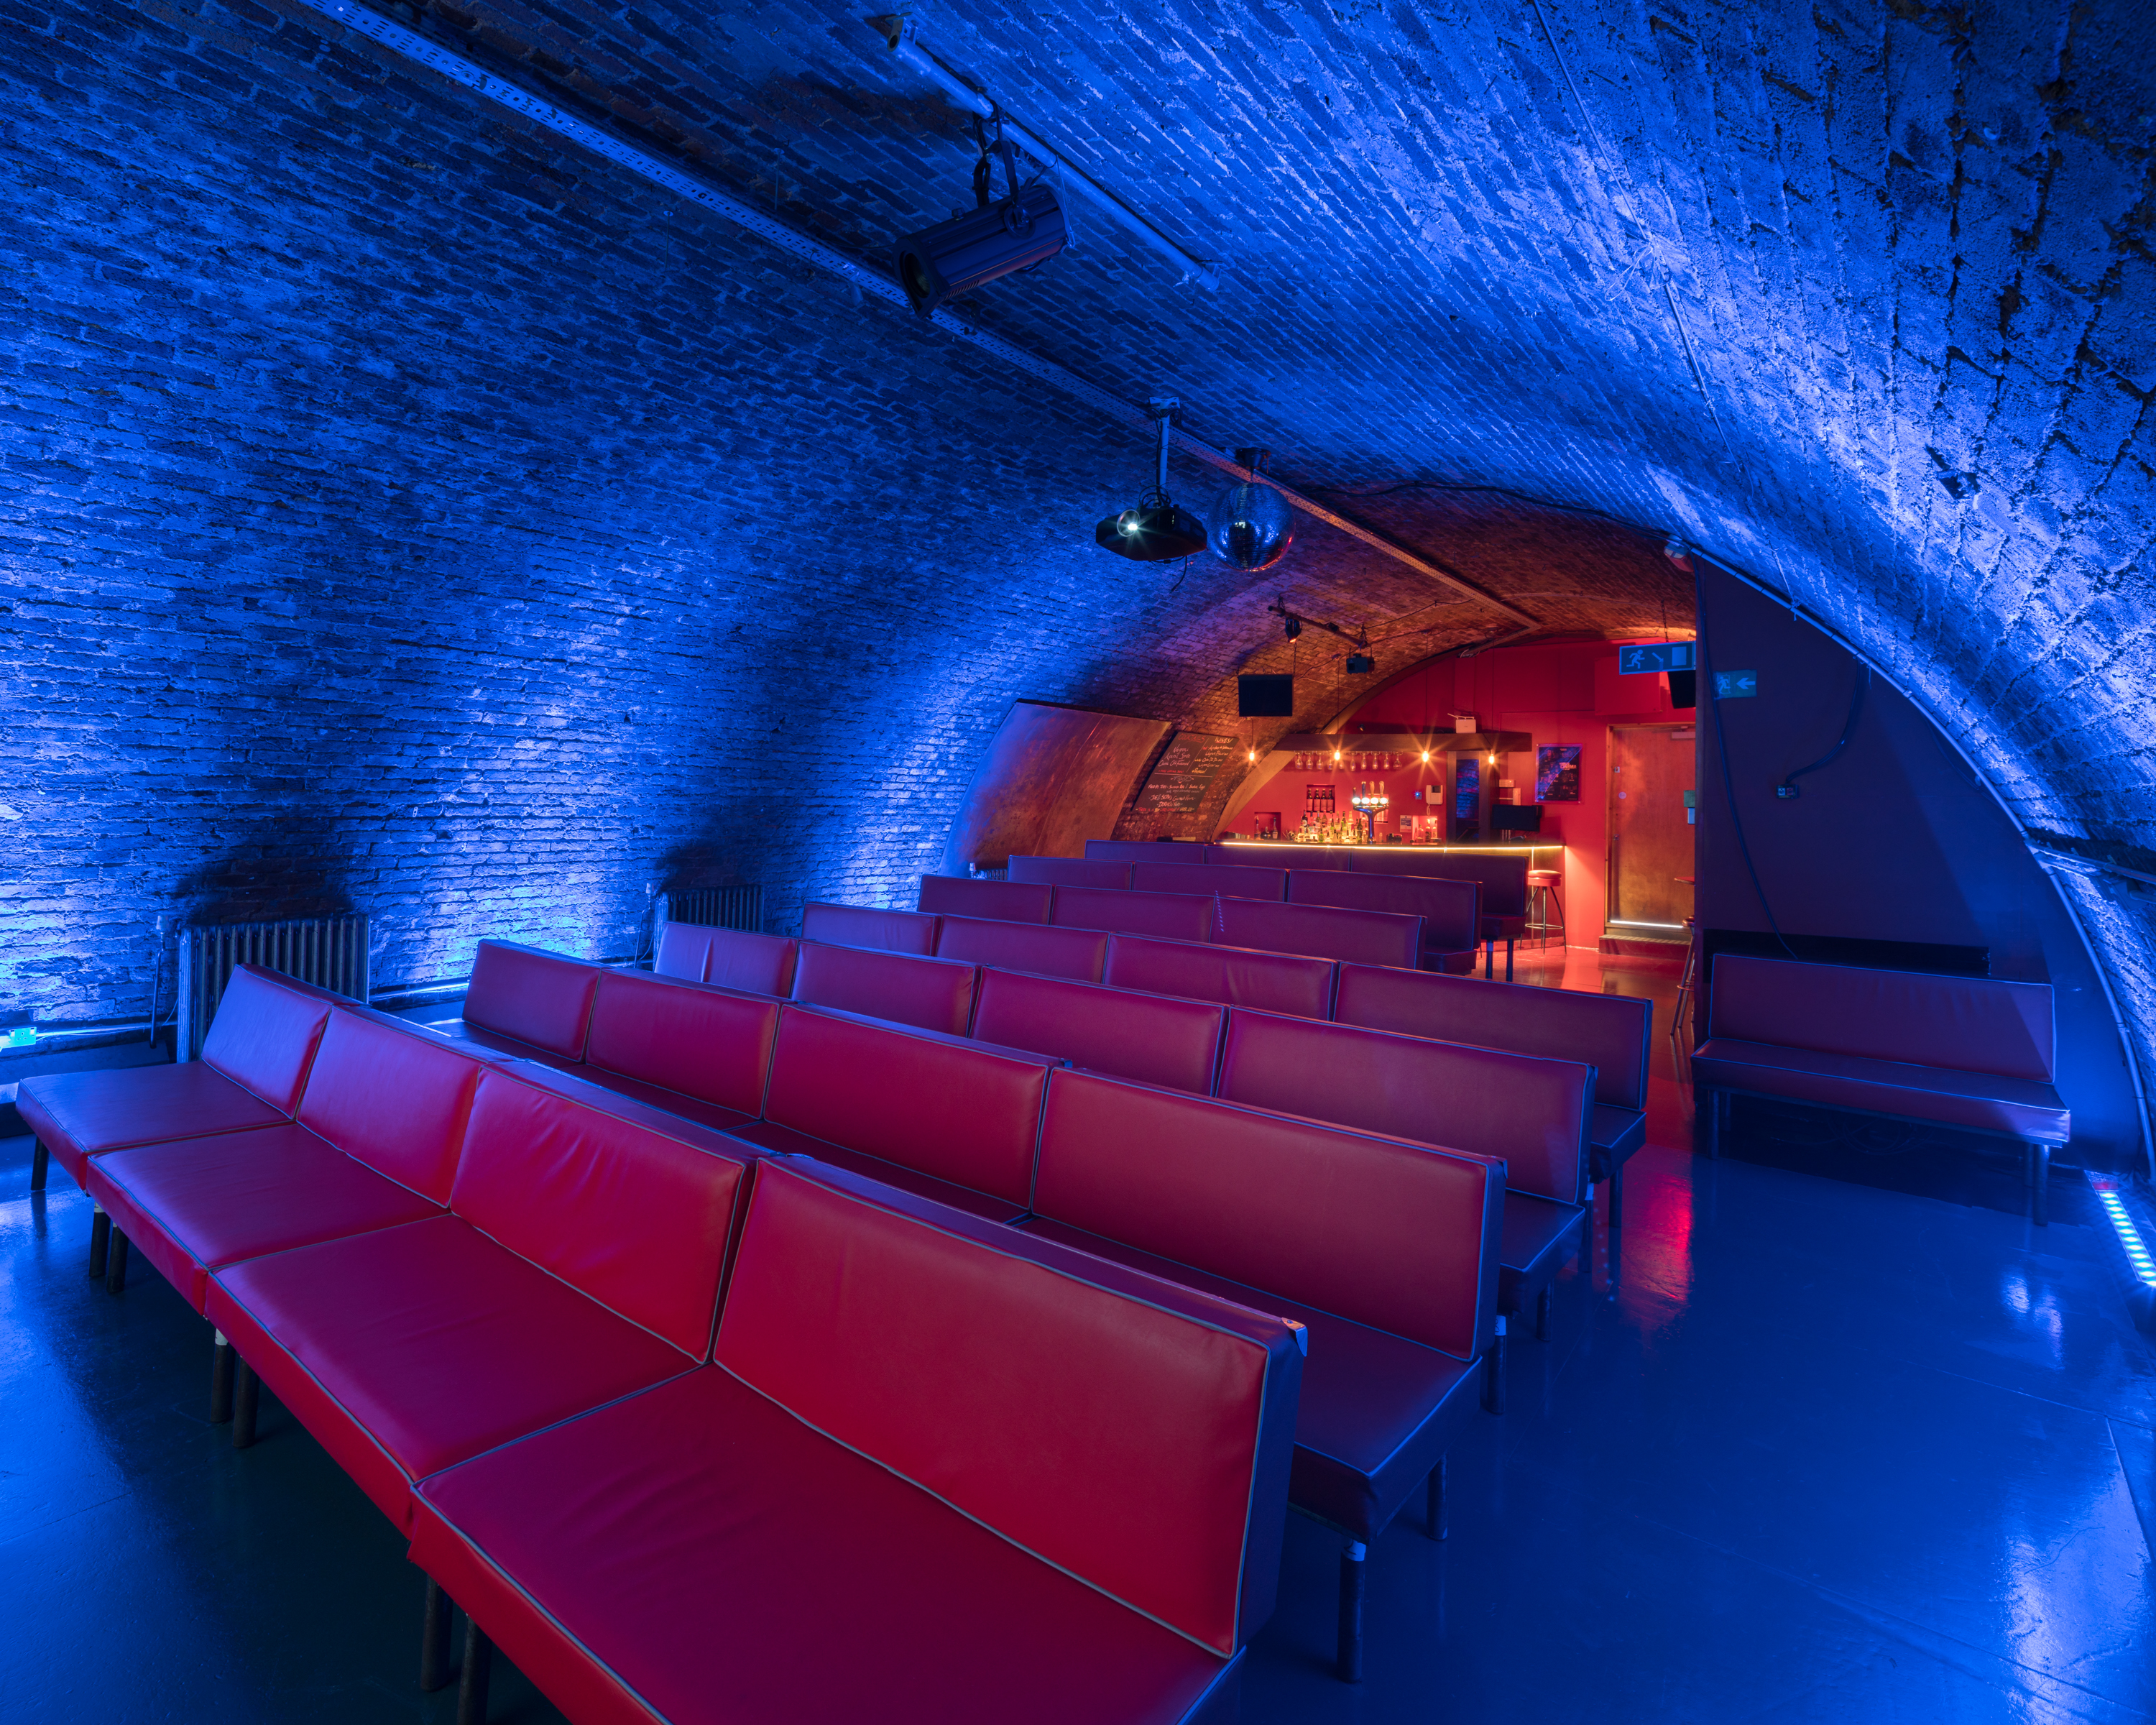 Whole Venue Whirled Cinema Event Venue Hire Tagvenue Com